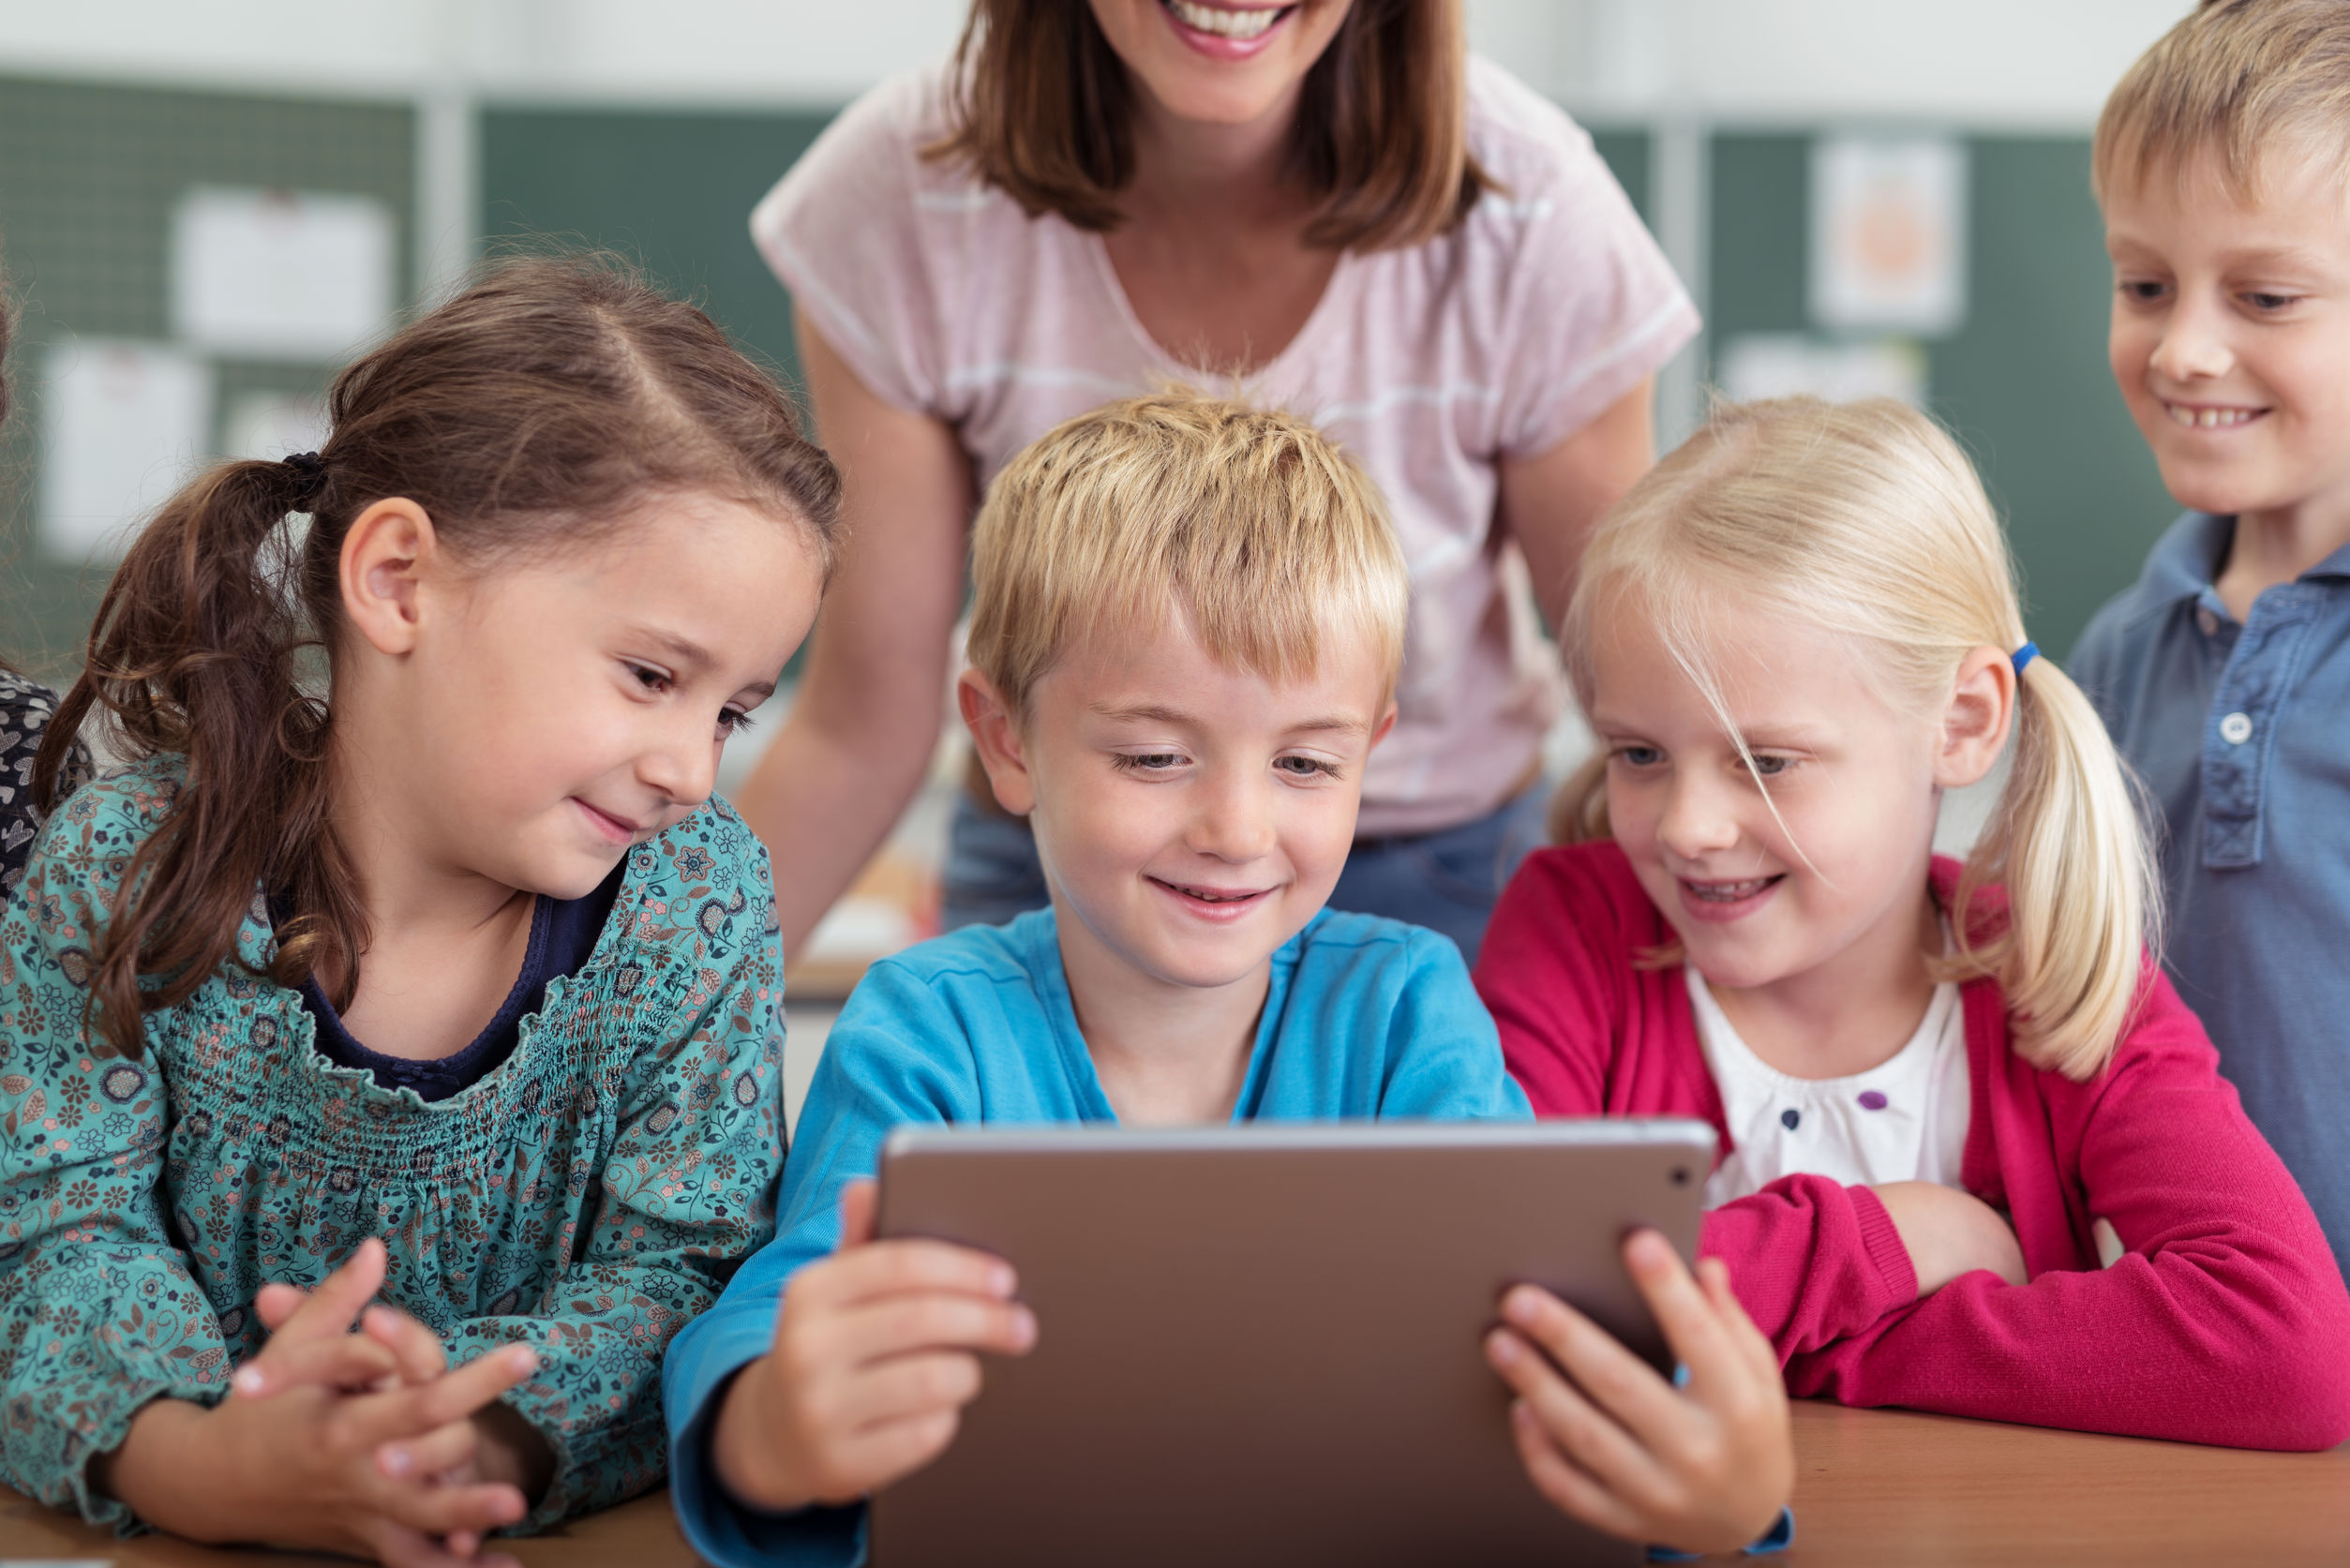 Smiling schoolchildren looking at a tablet - AV in education